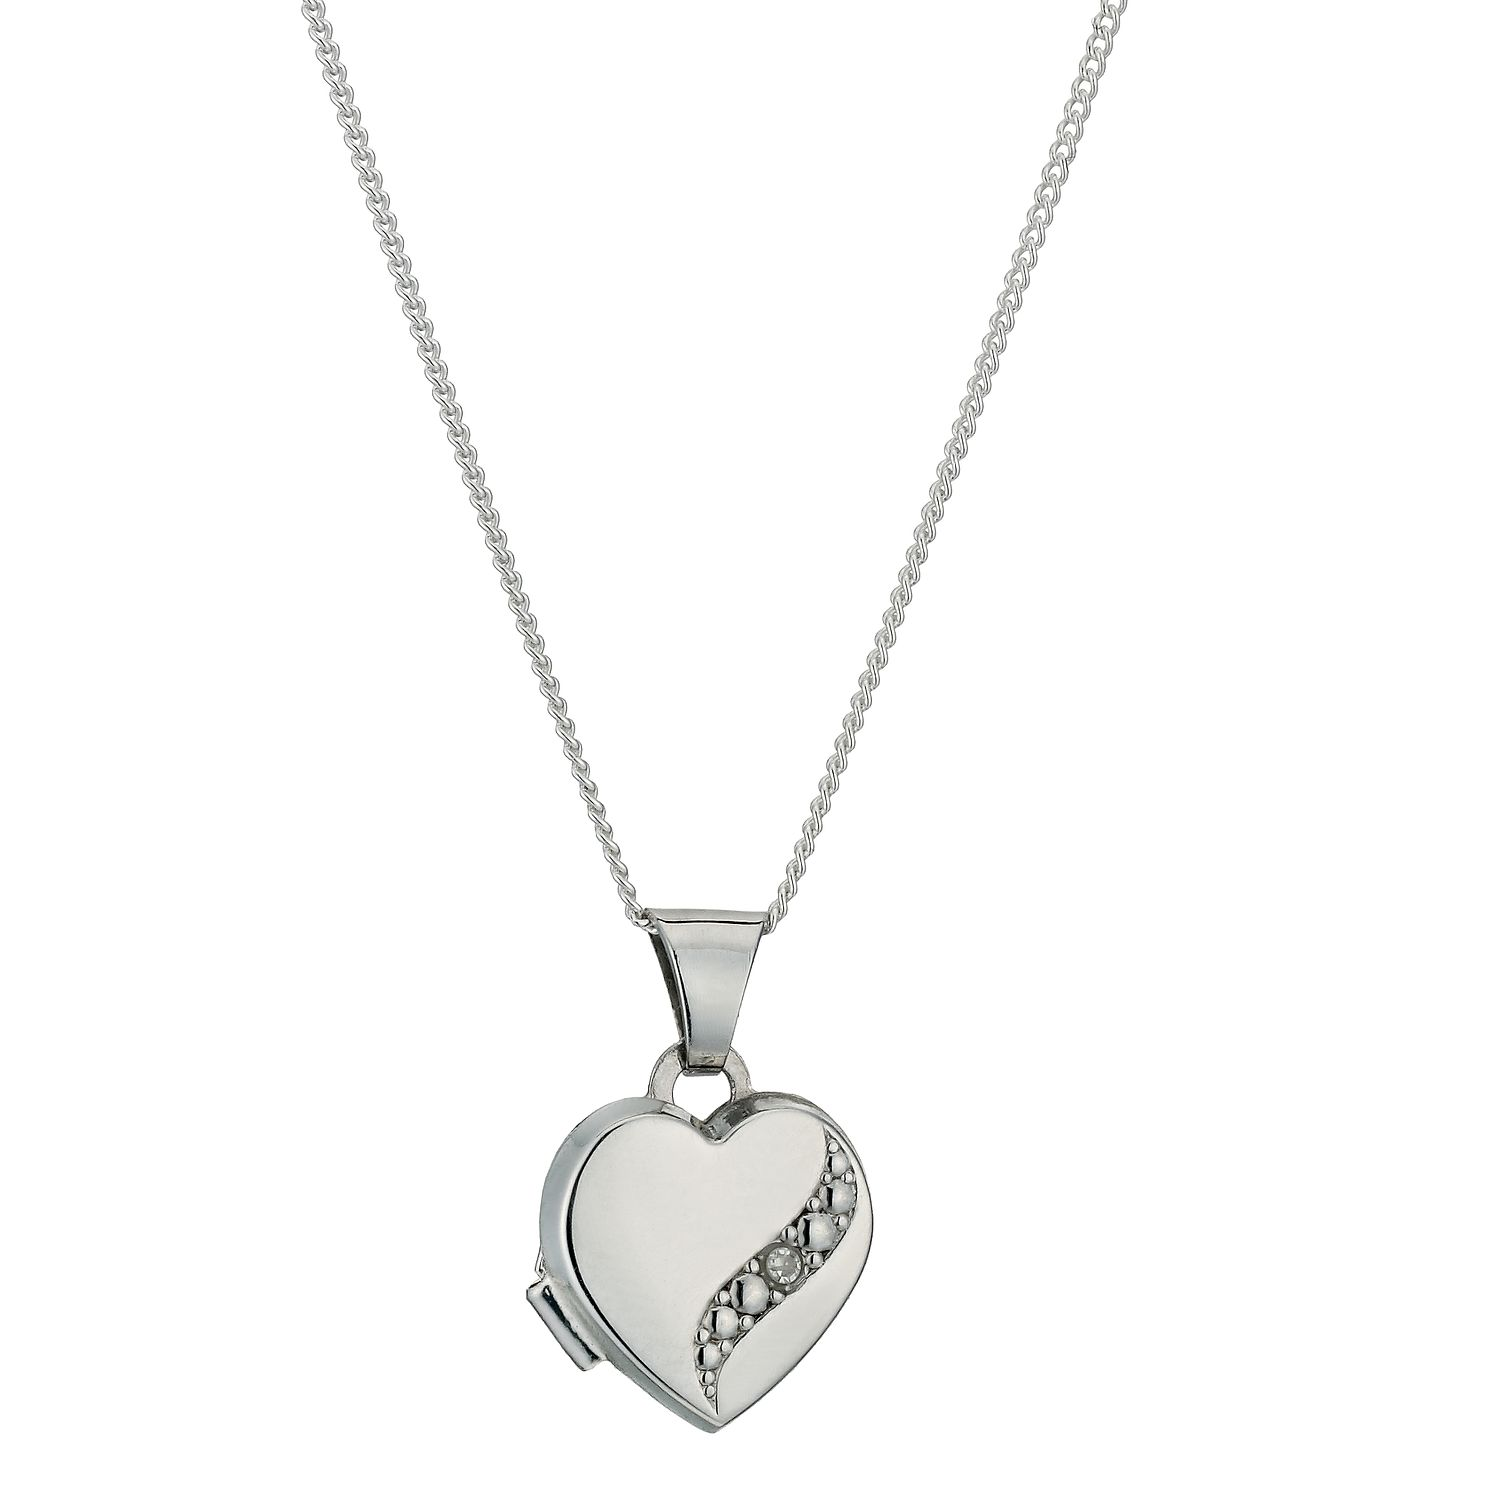 Lockets hmuel sterling silver diamond locket product number 9995137 aloadofball Gallery